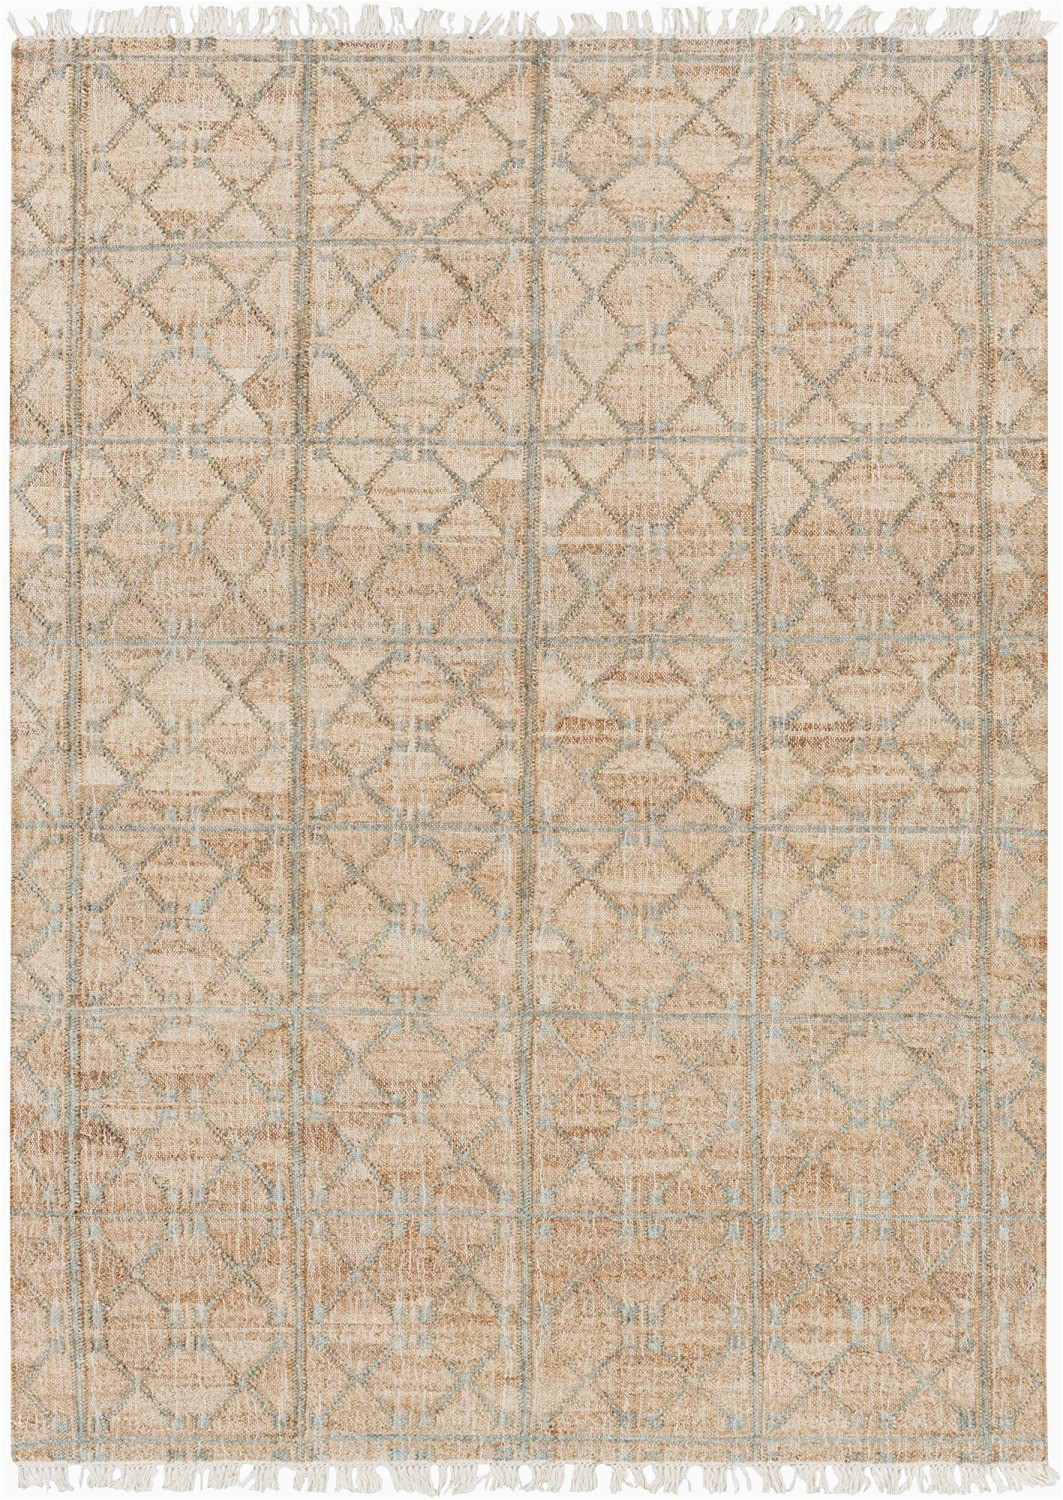 8 X 10 Cream area Rug Amazon Surya Laural area Rug 8 X 10 Cream Khaki